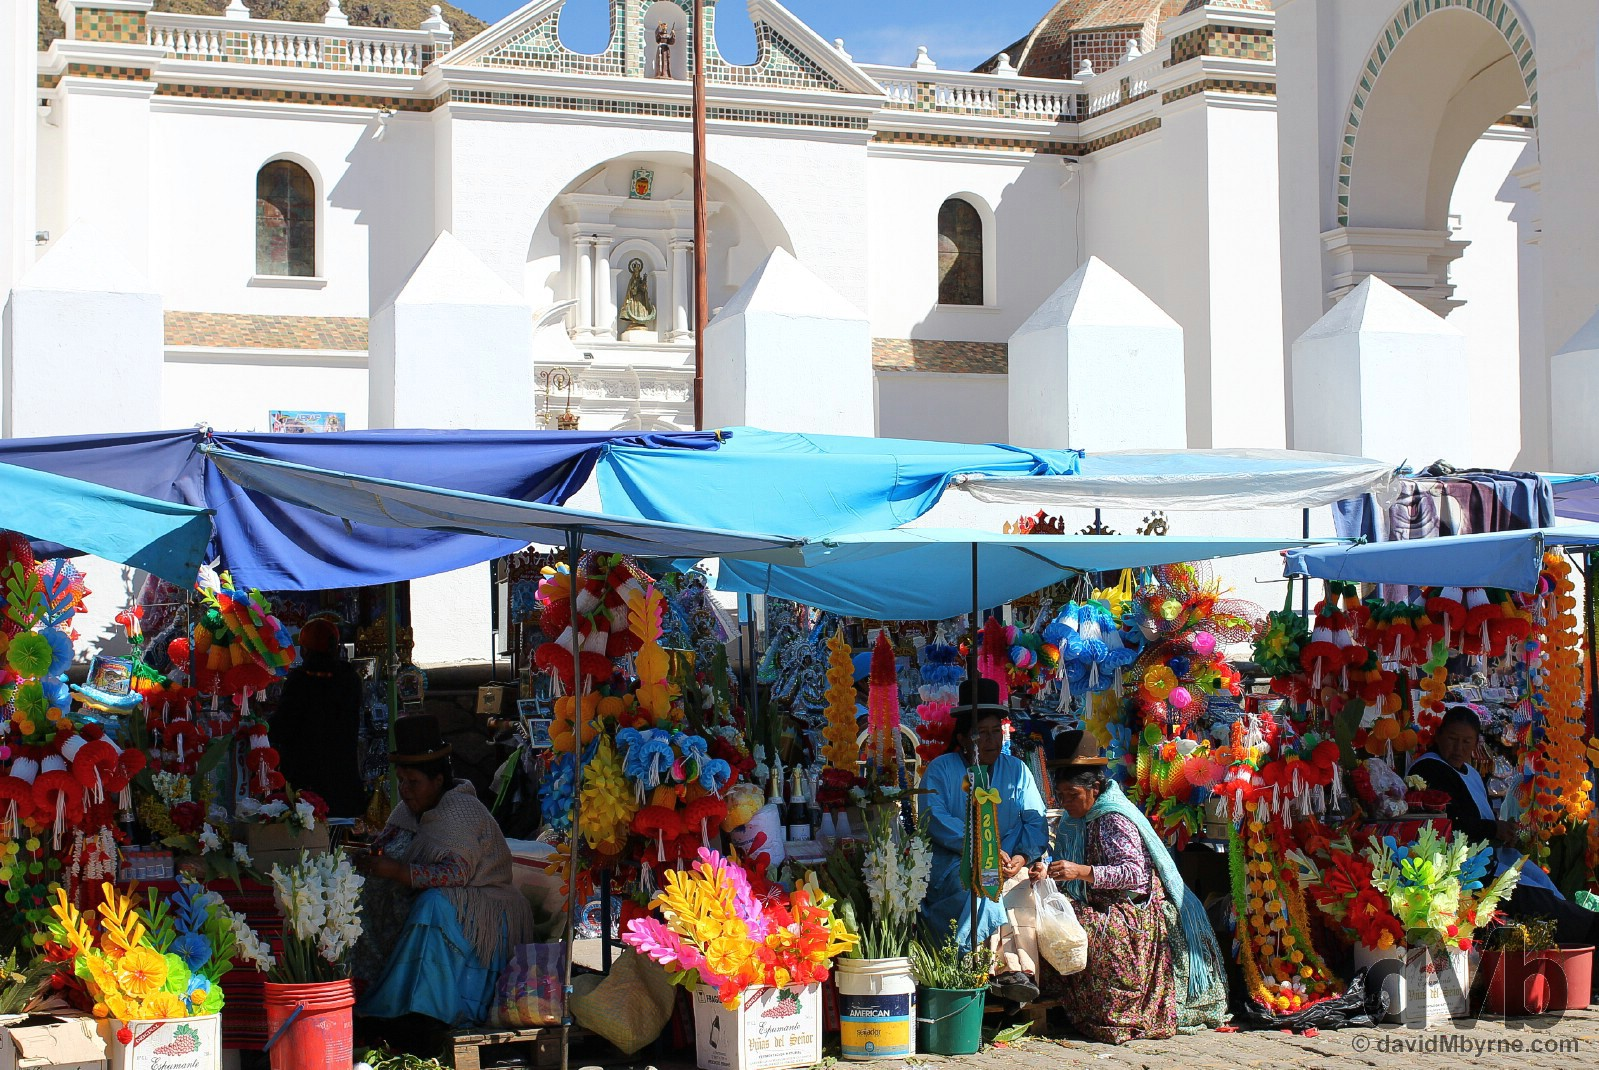 Vendors outside the Catedral in Copacabana, Bolivia. August 23, 2015.